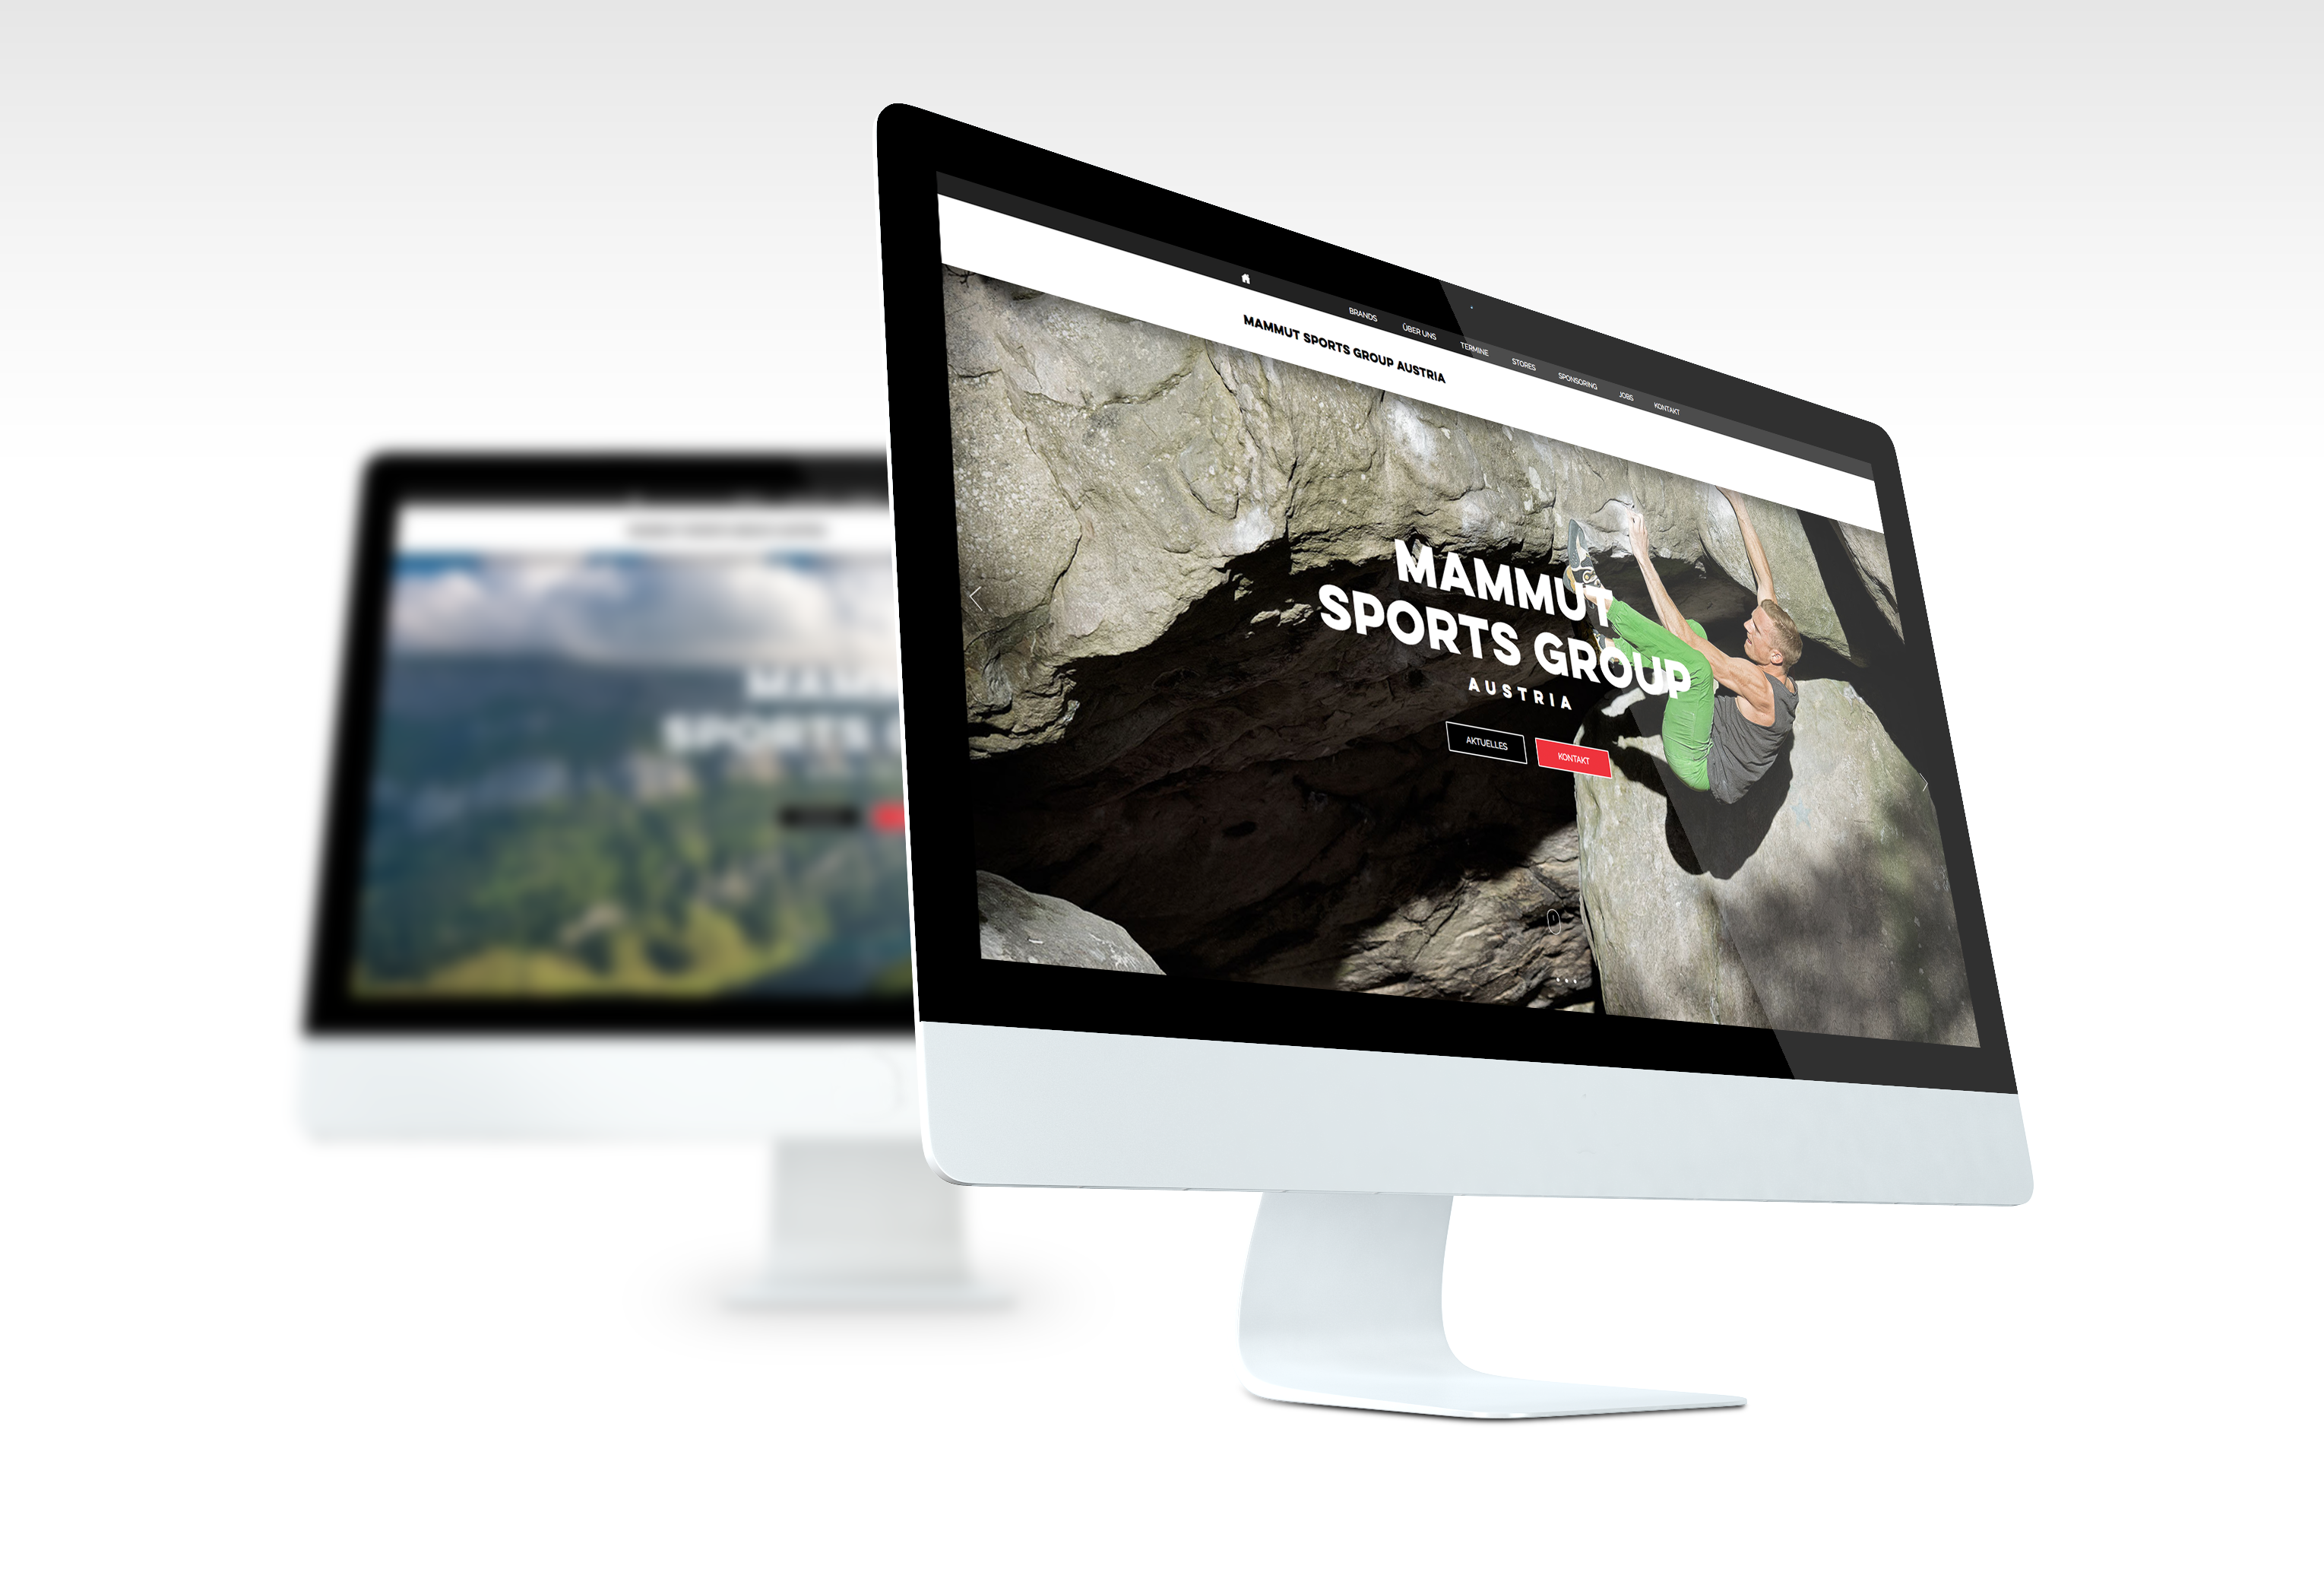 MAMMUT SPORTS GROUP AUSTRIA